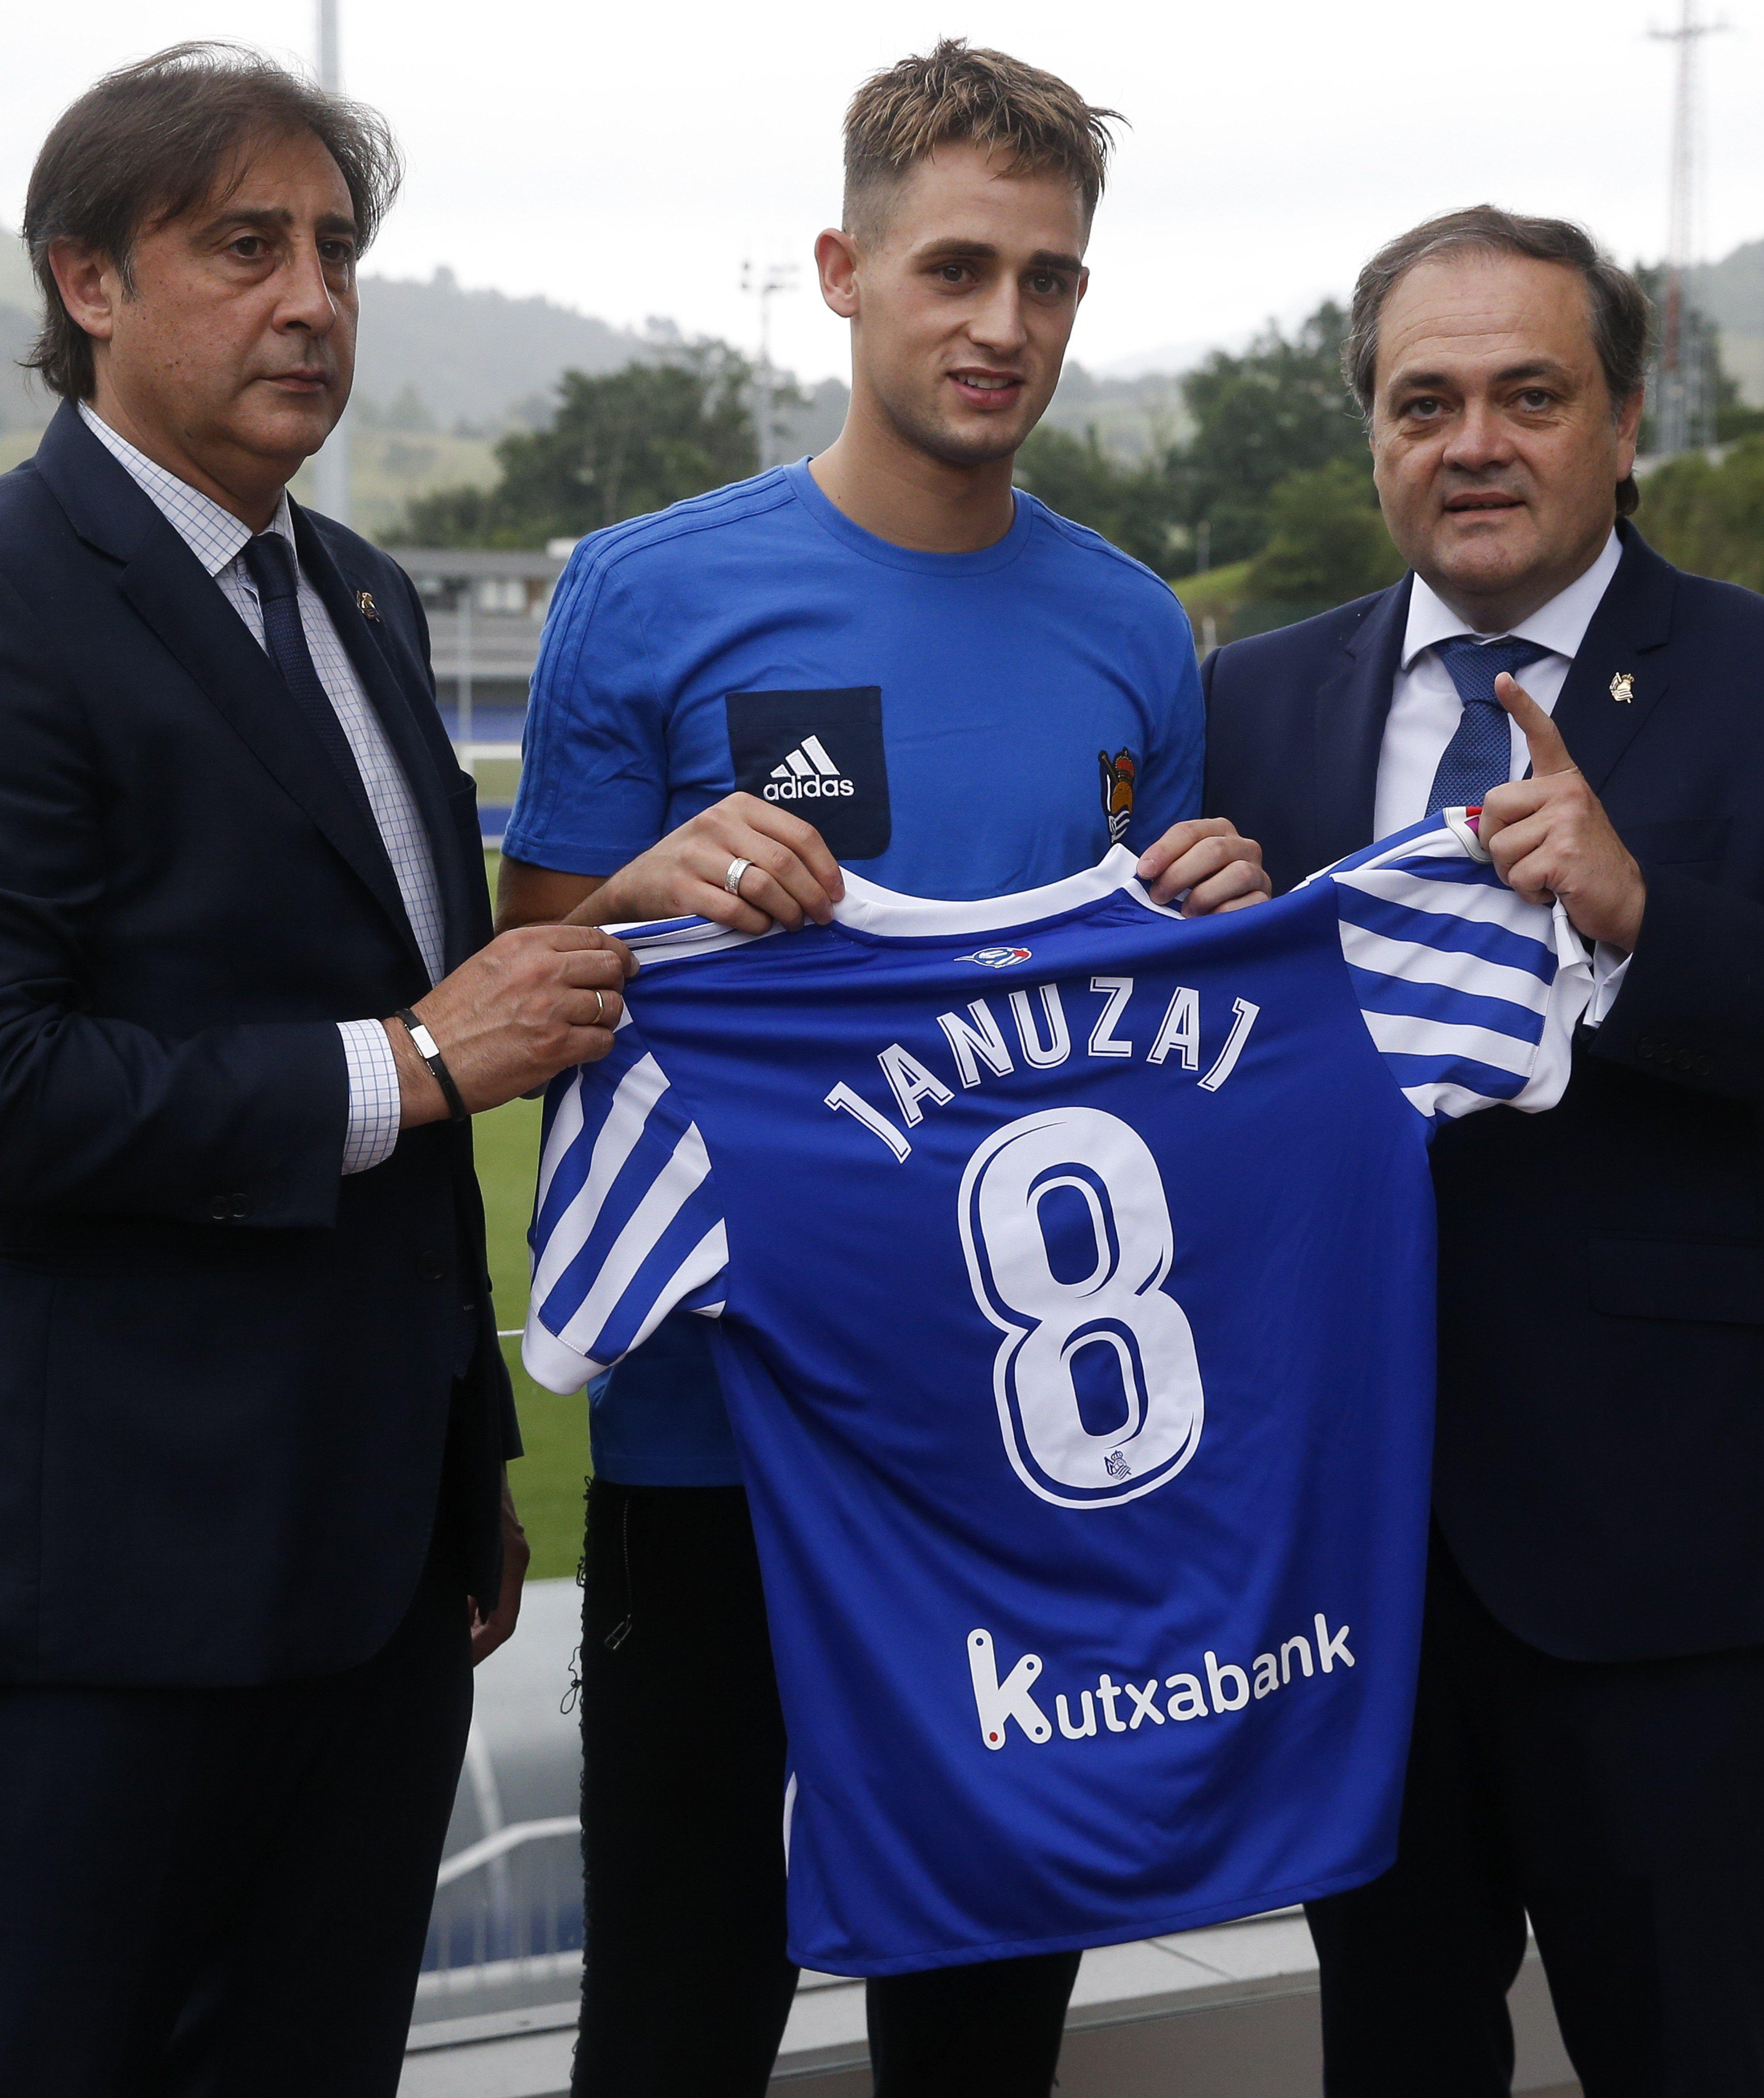 Januzaj joined Real Sociedad for £8million last month